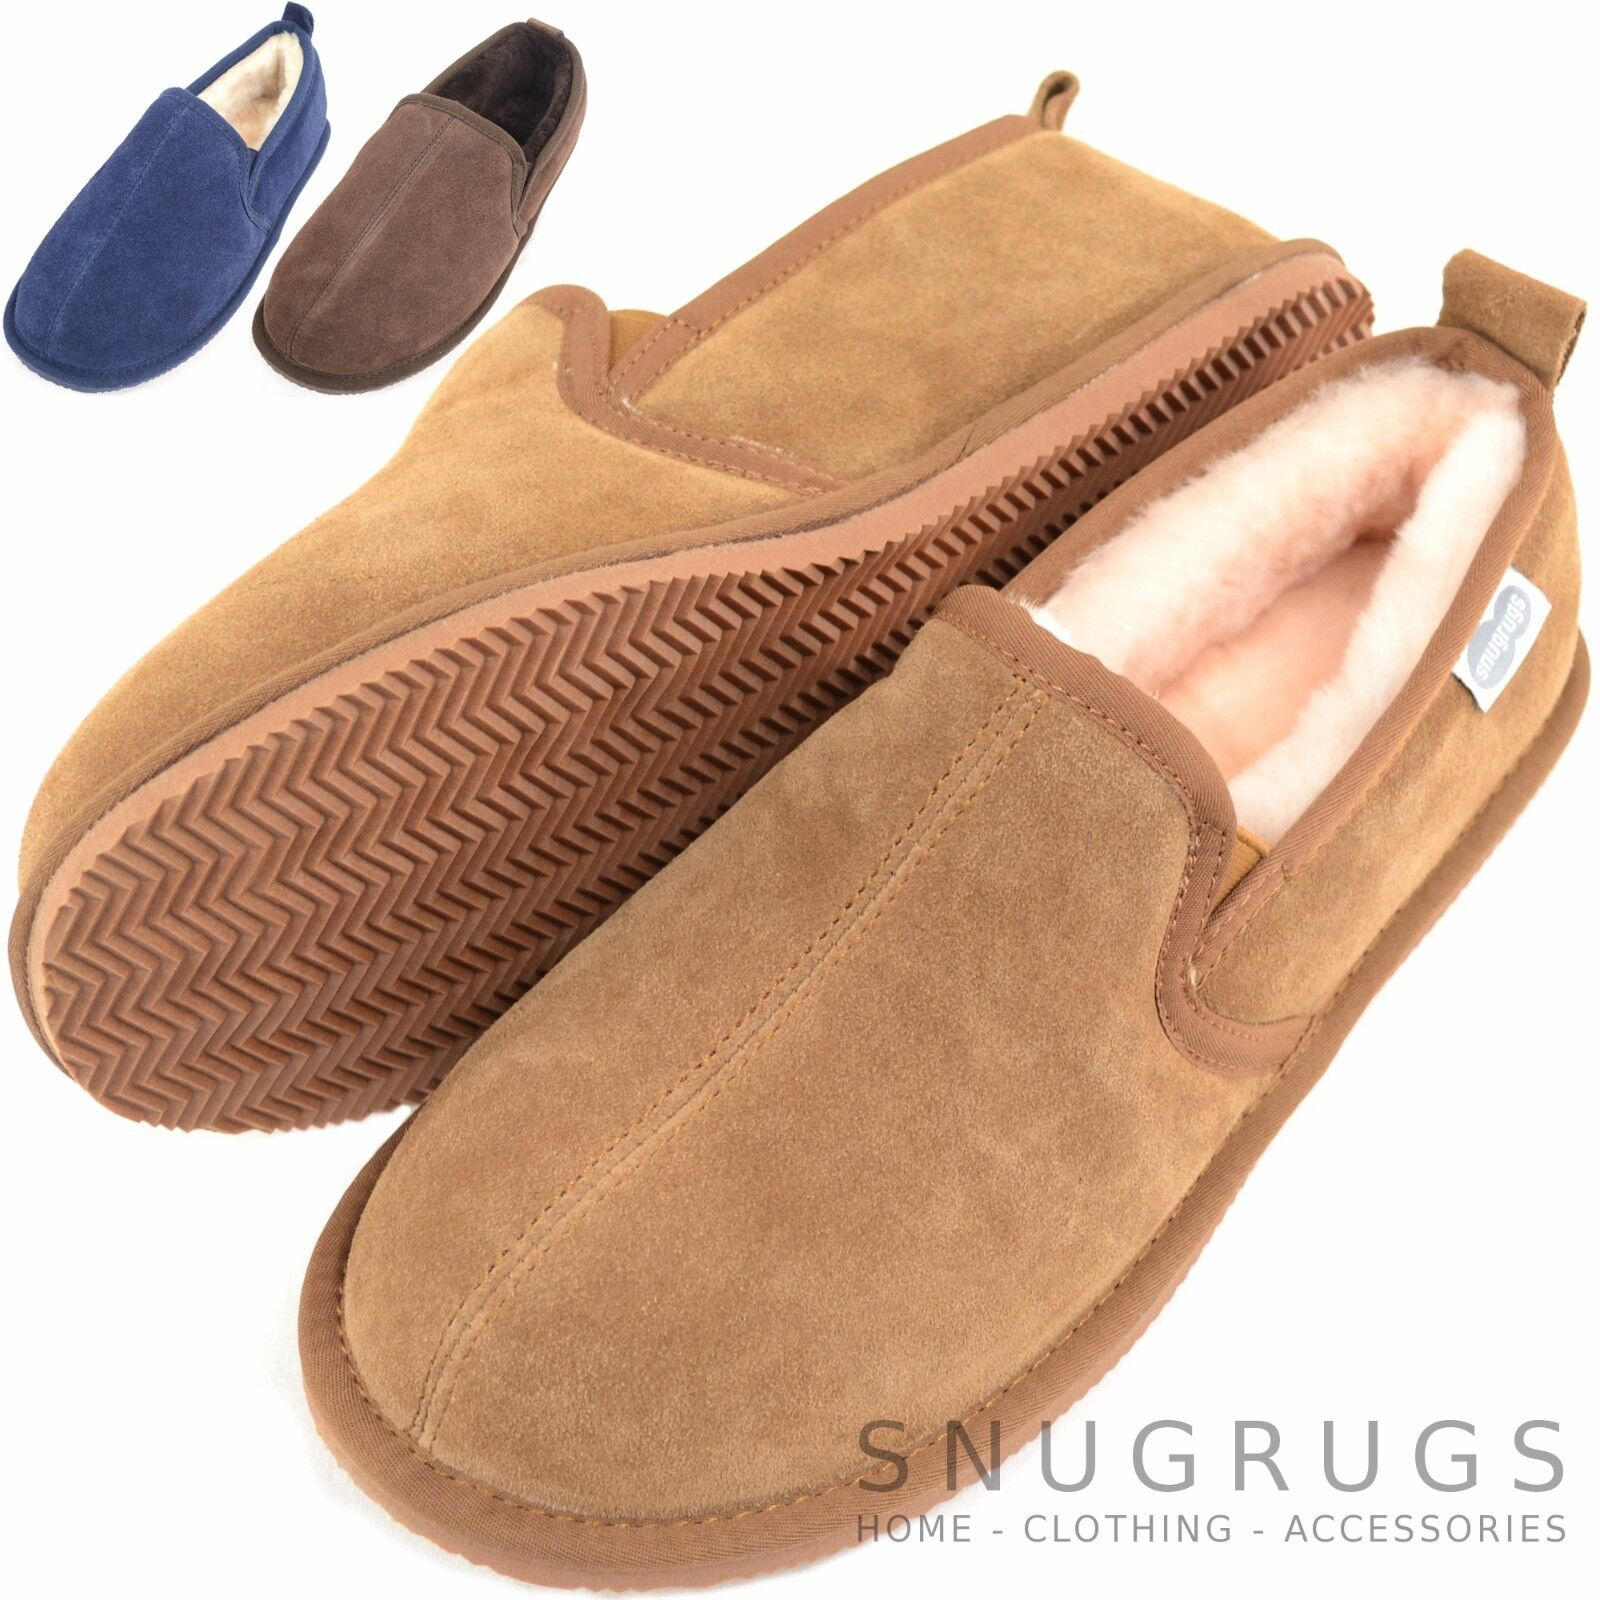 20548222a4a Details about SNUGRUGS Mens   Gents Luxury Full Sheepskin Slipper Boots  with Rubber Sole